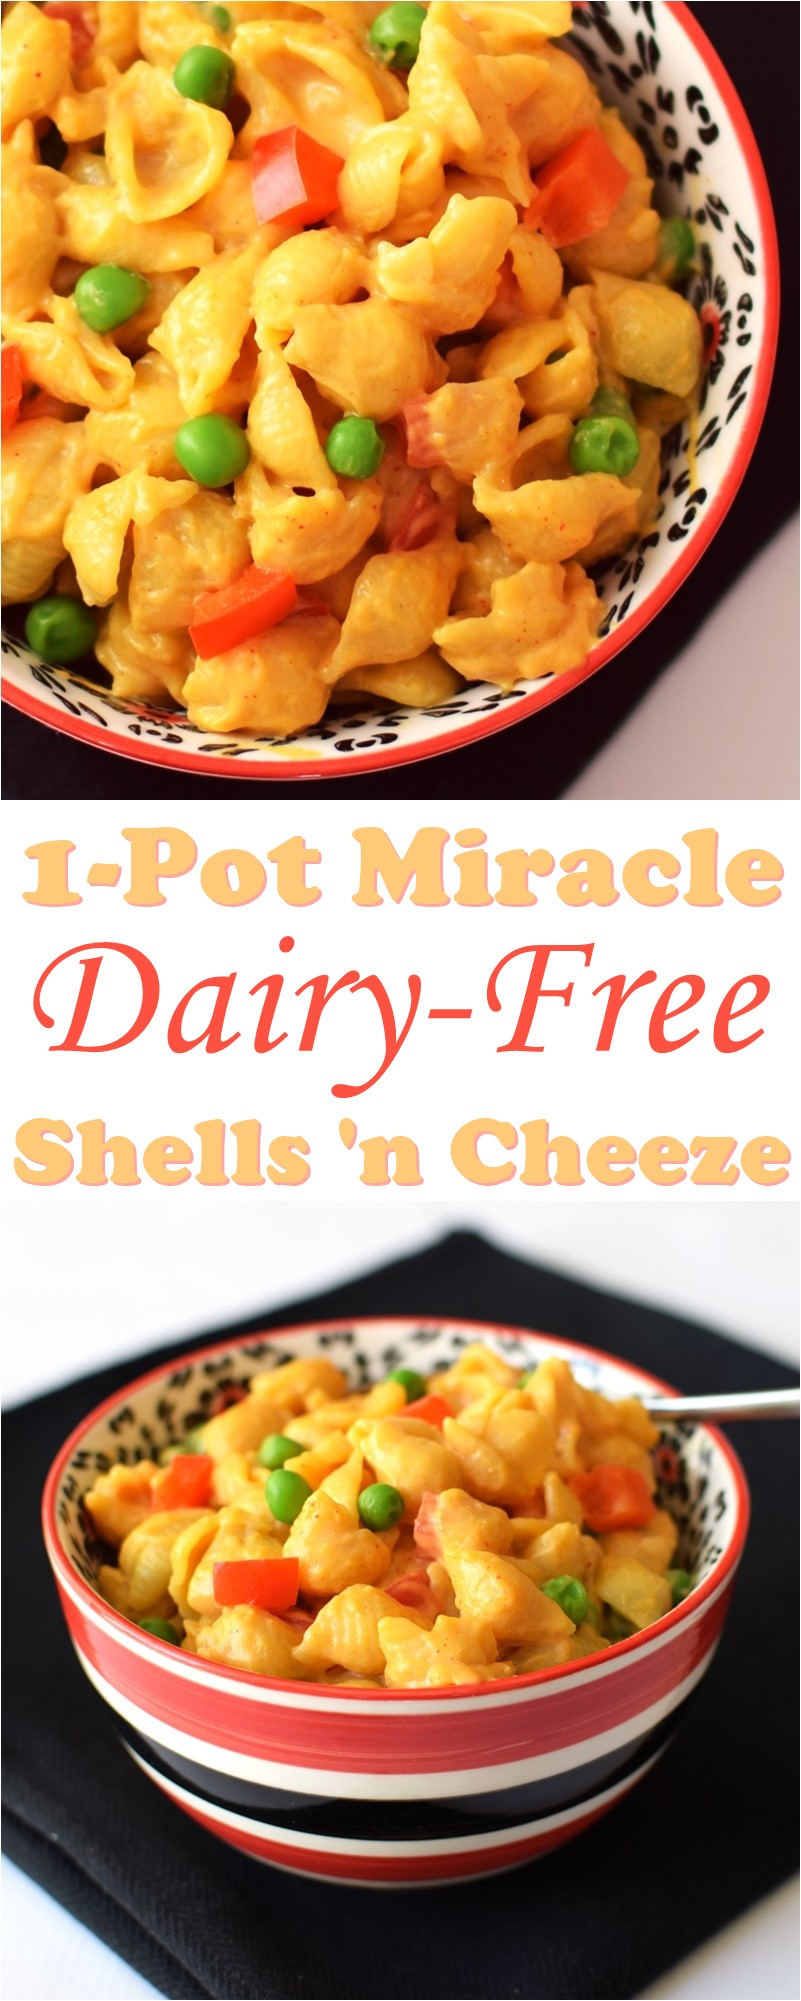 Dairy-Free Miracle Mac and Cheese Recipe! (shells & cheese pictured) - Easy, 1-pot, vegan, gluten-free optional